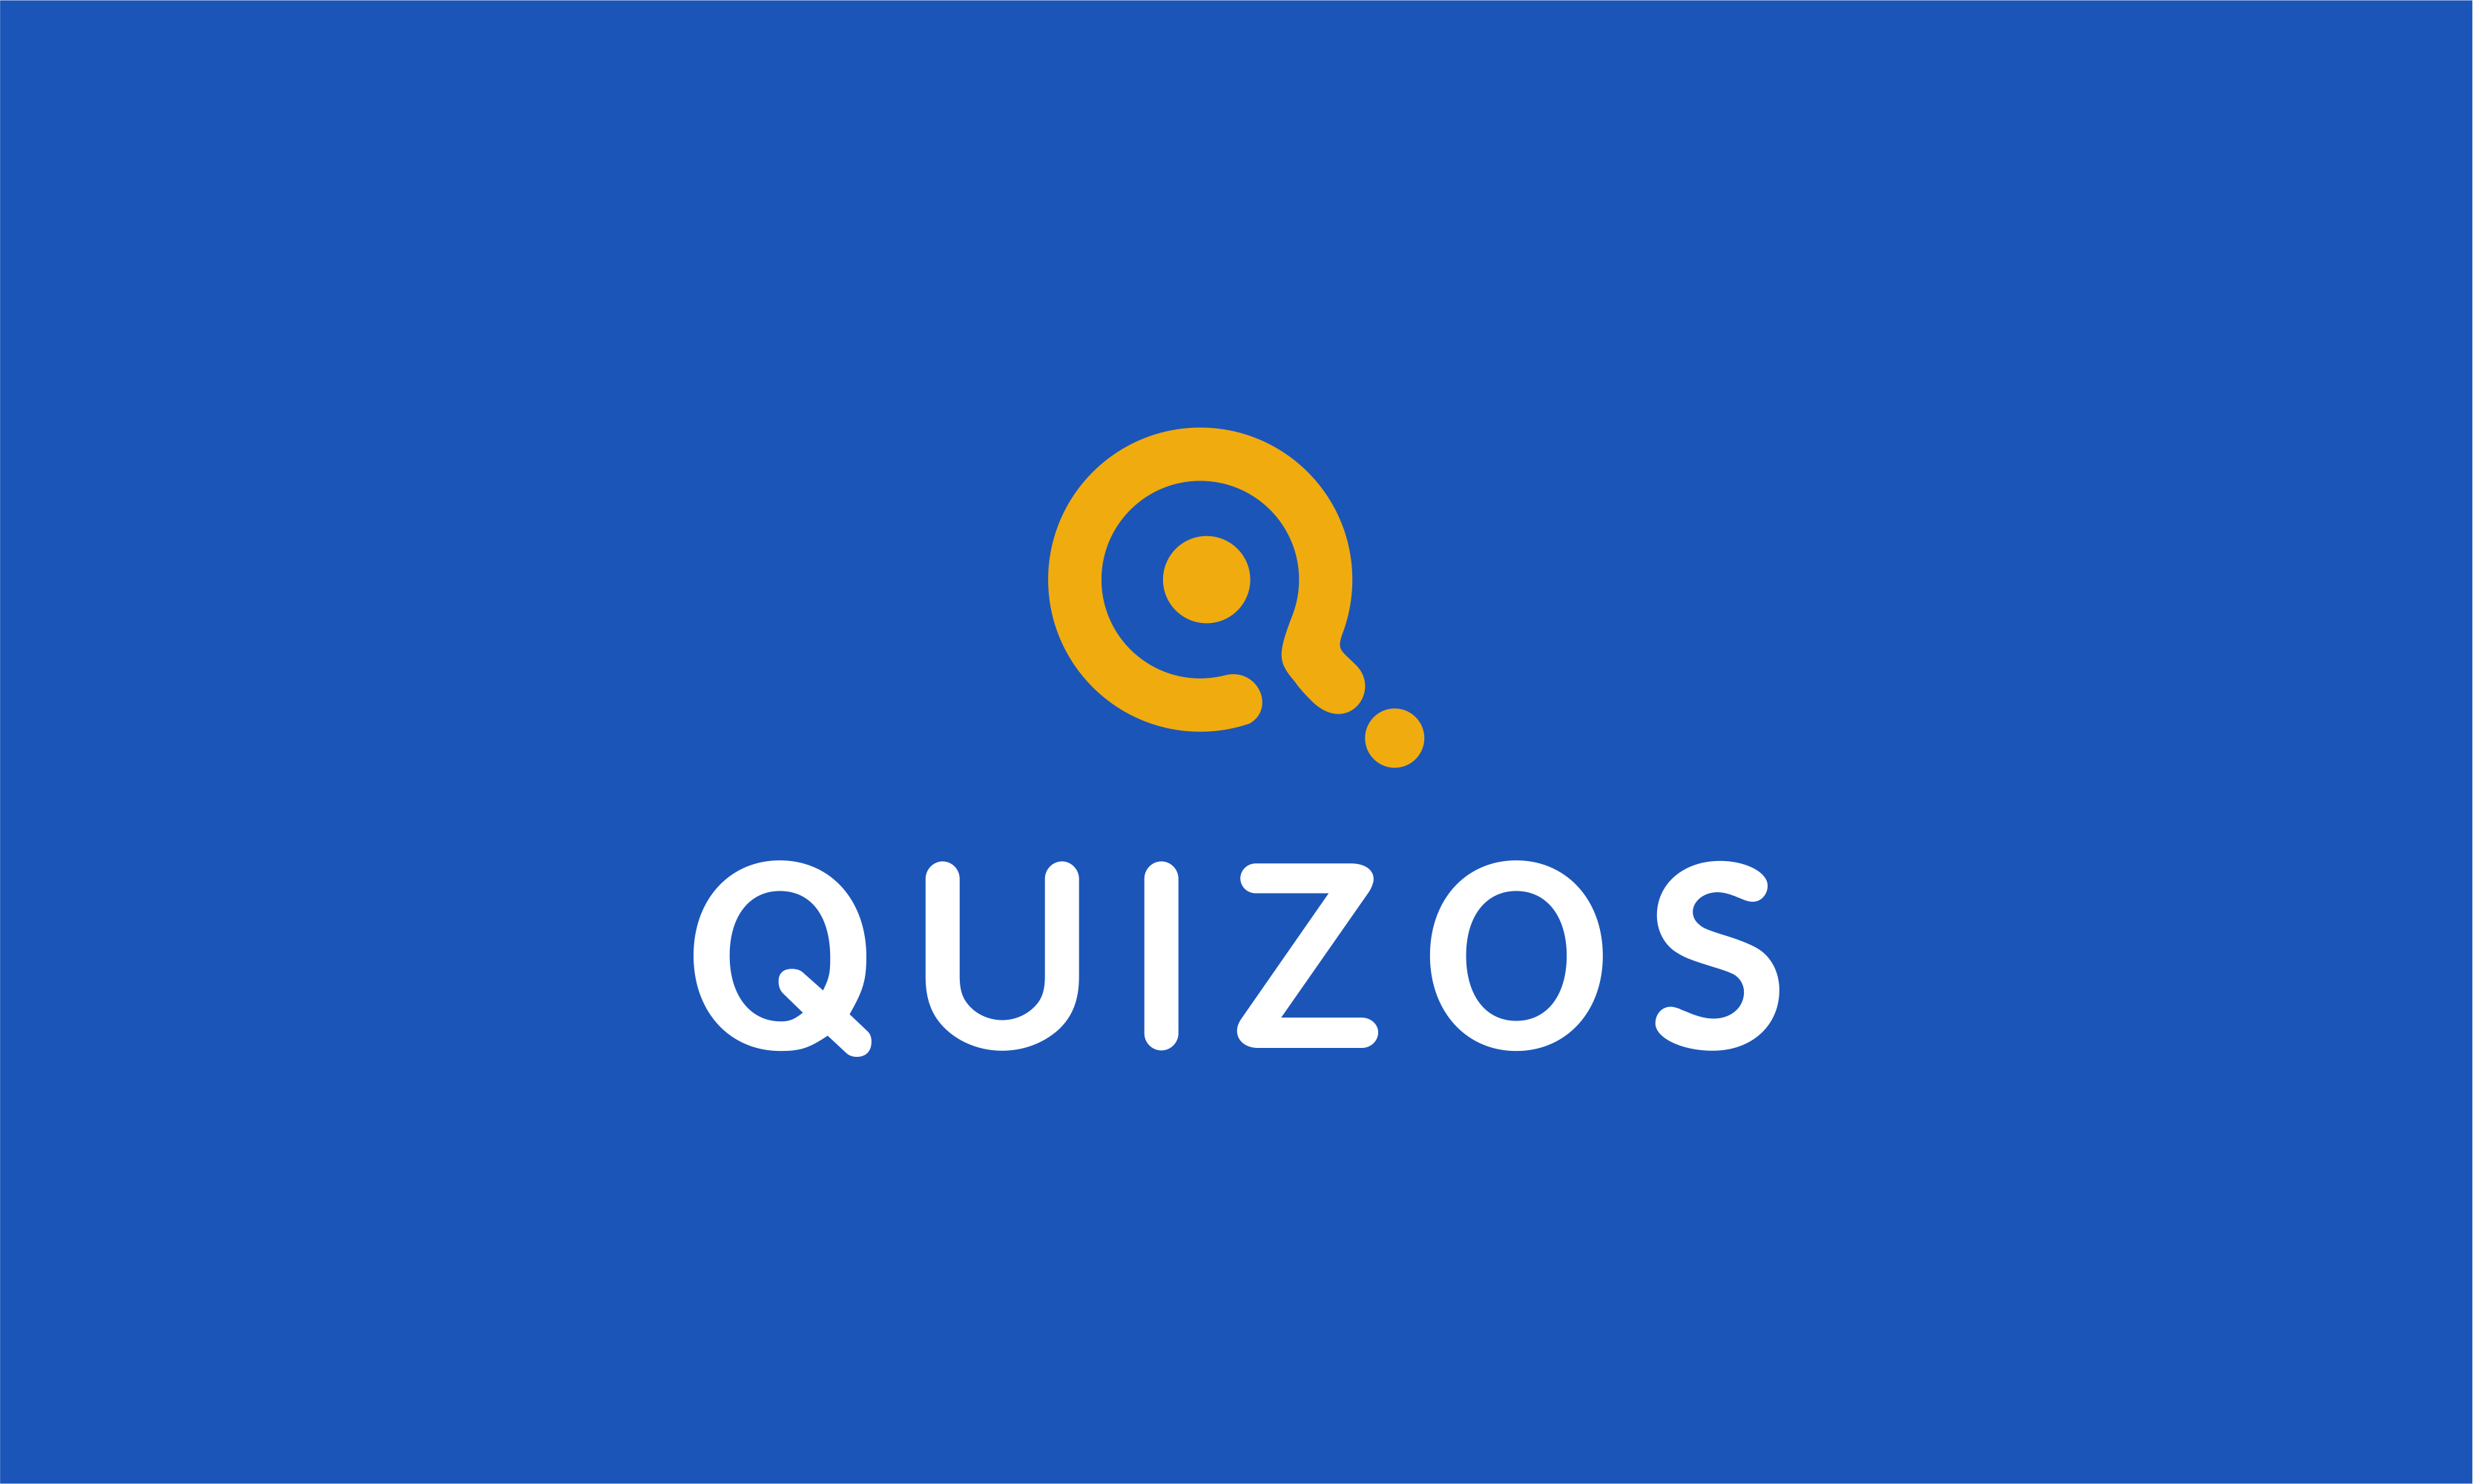 Quizos - Business company name for sale